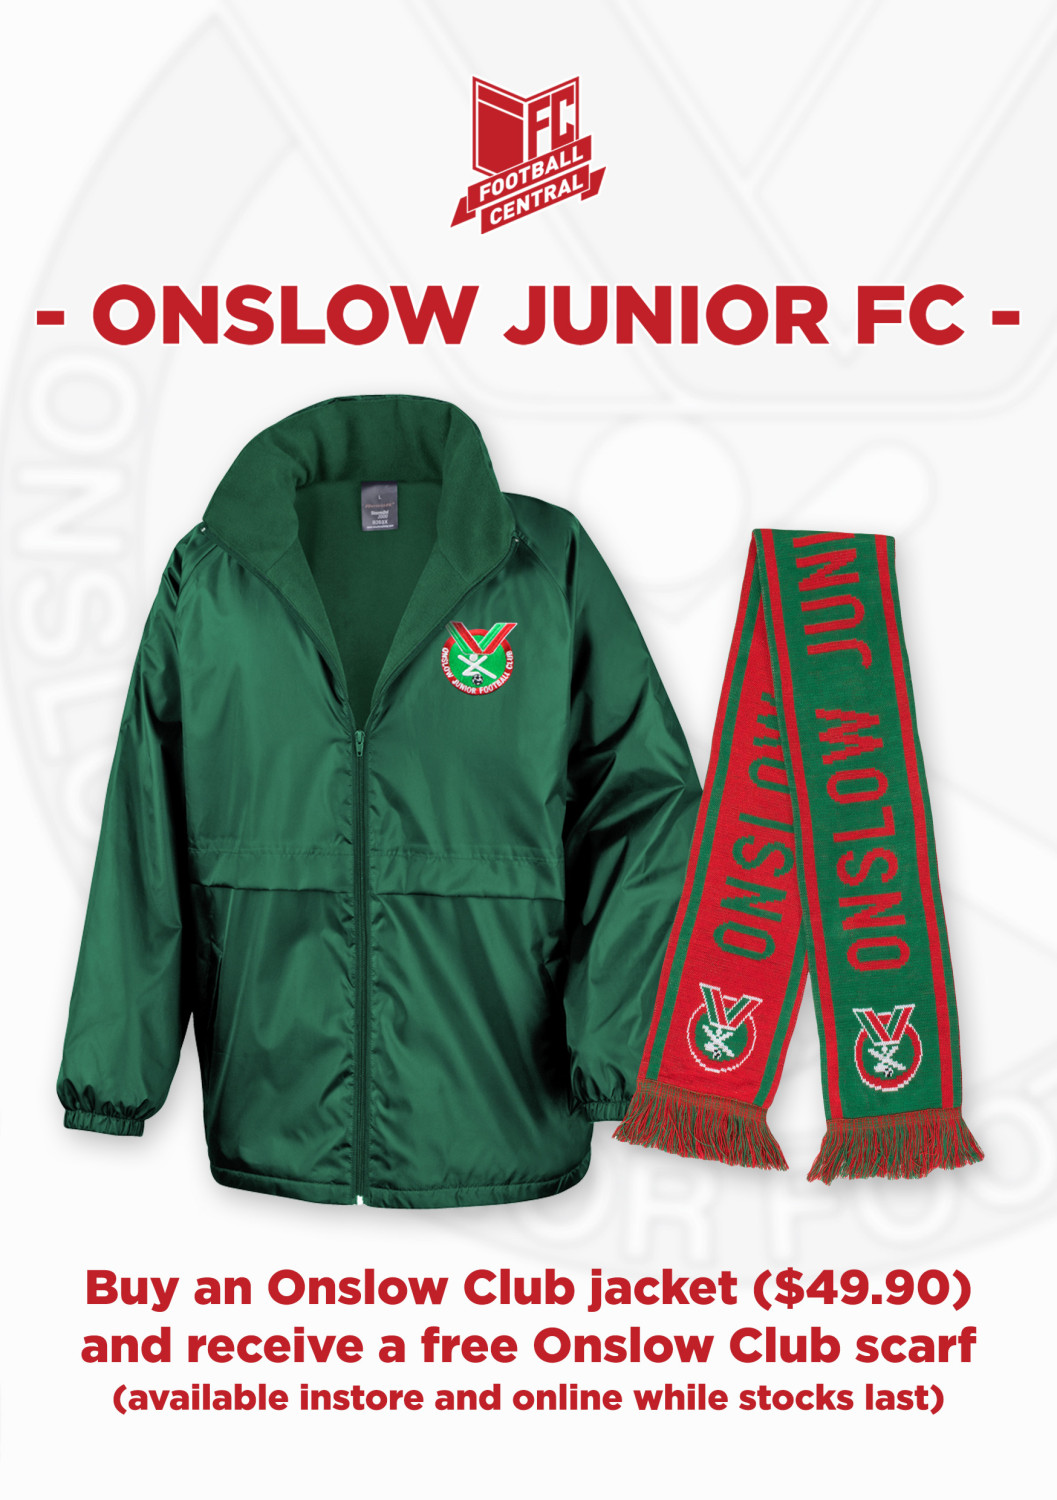 Onslow-Junior-Free-Scarf-With-Jacket-A5-0717